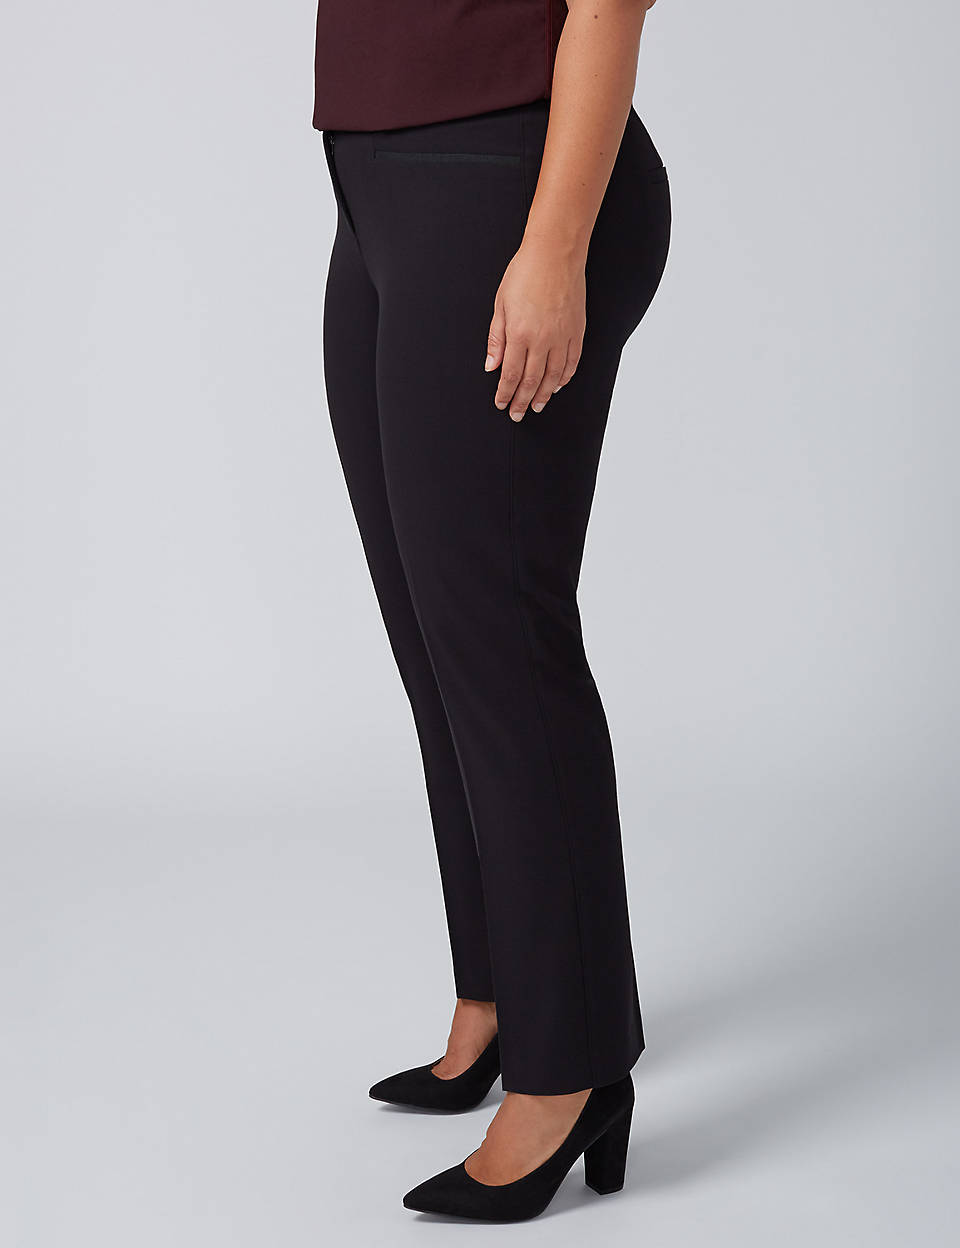 458c2056a21 Lena Tailored Stretch Straight Leg Pant with T3 Technology